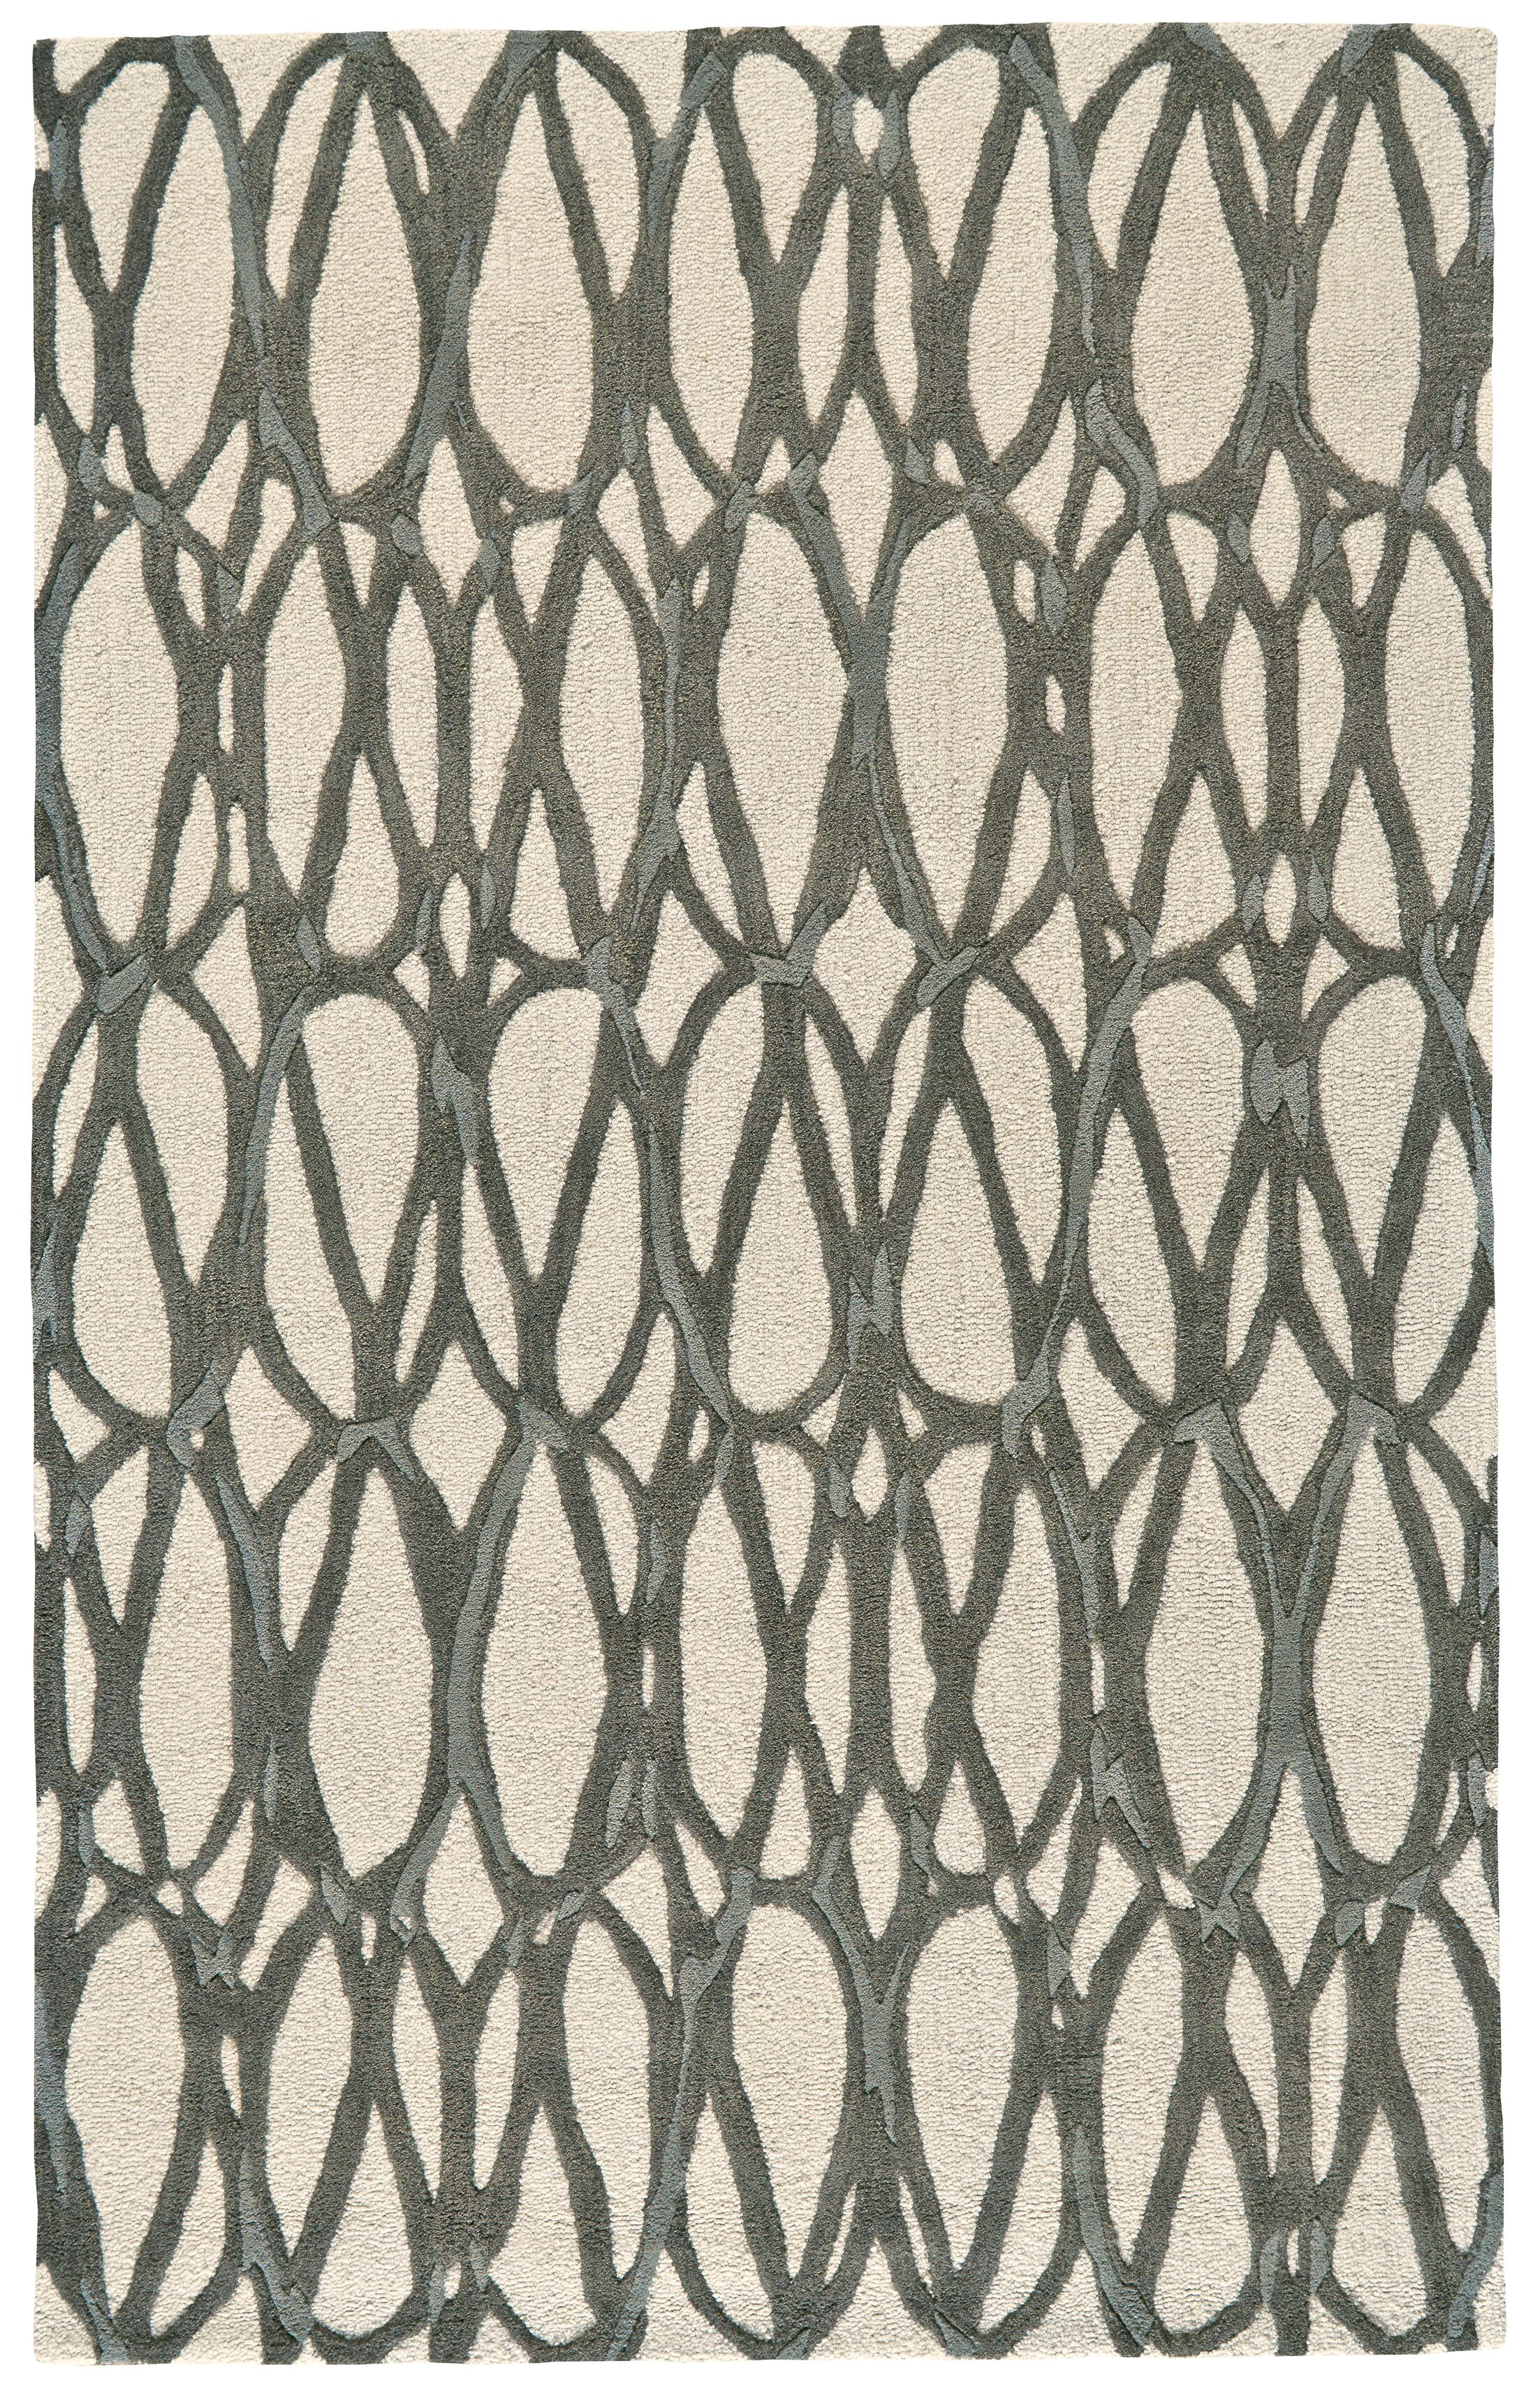 Blacke Hand-Tufted Titanium Area Rug Rug Size: Rectangle 5' x 8'